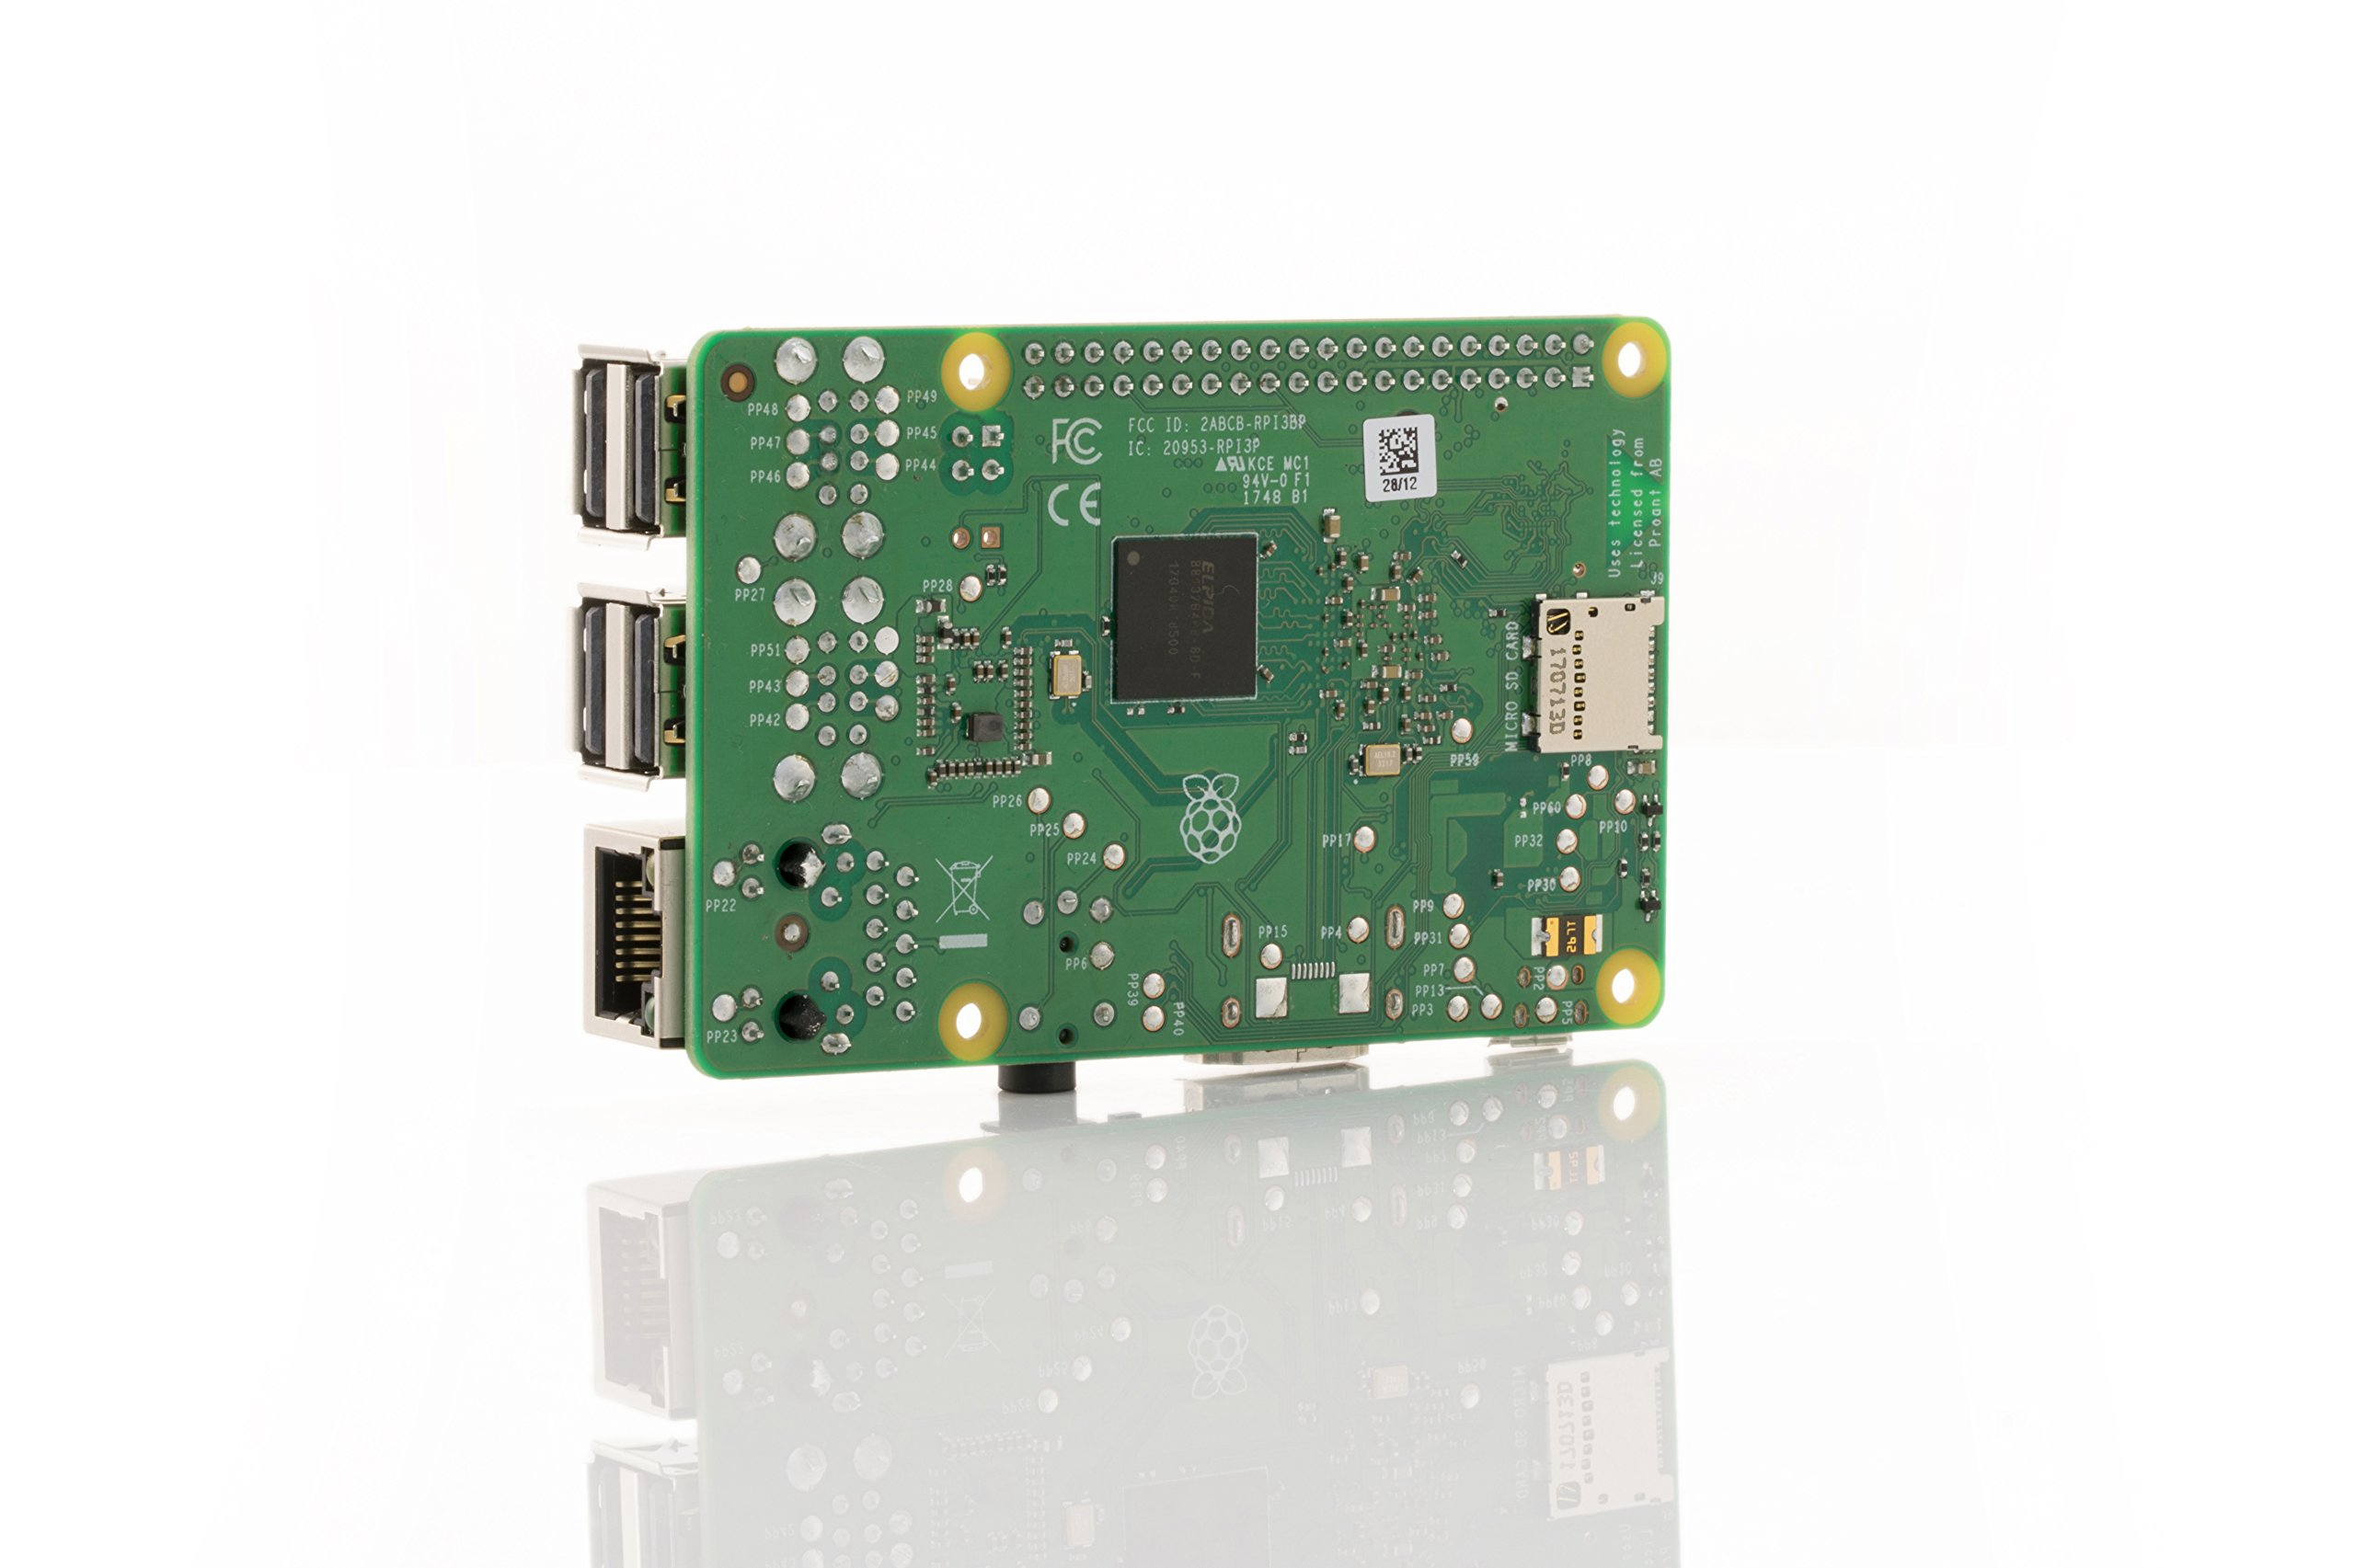 Vilros Raspberry Pi 3 Model B+ (B Plus)-With 2.5A Power Supply [LATEST MODEL 2018] by Vilros (Image #9)